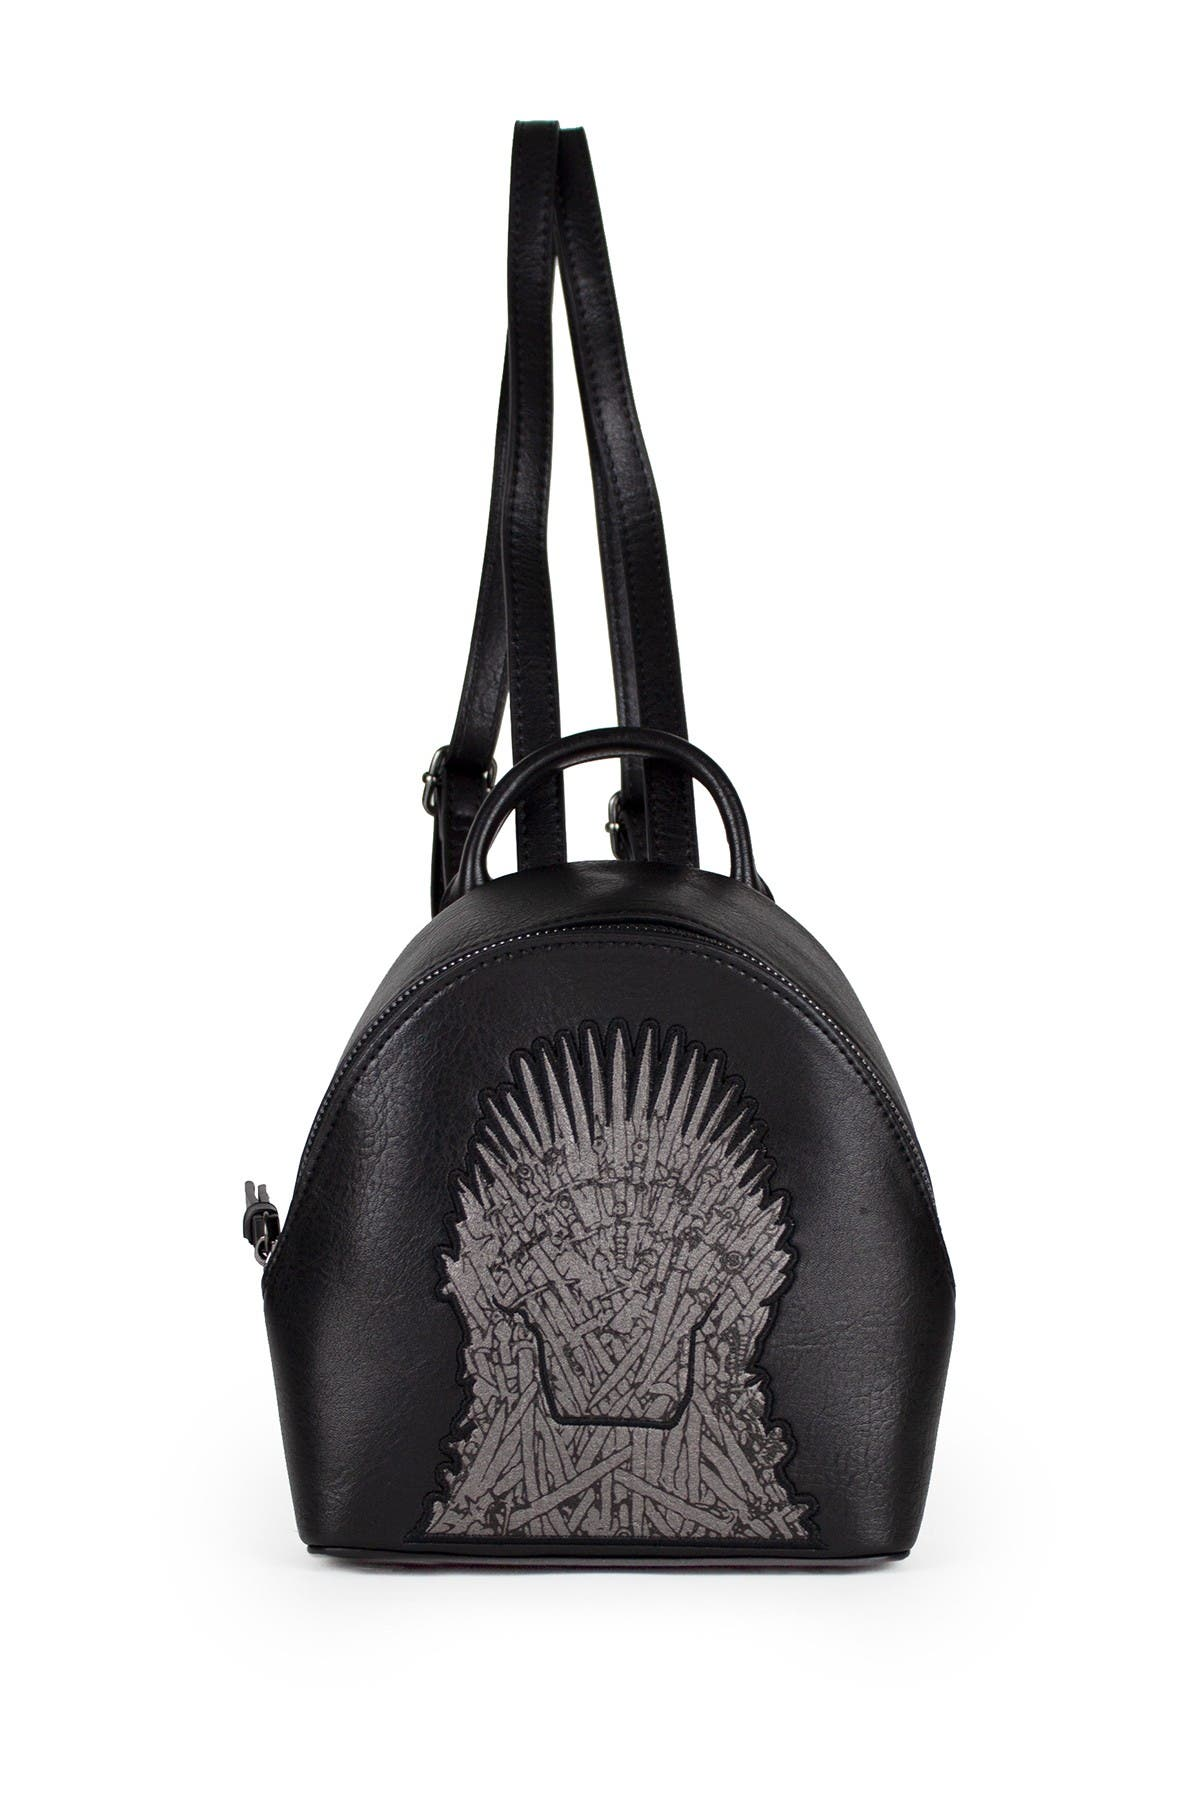 Image of Danielle Nicole Game of Thrones Convertible Mini Backpack